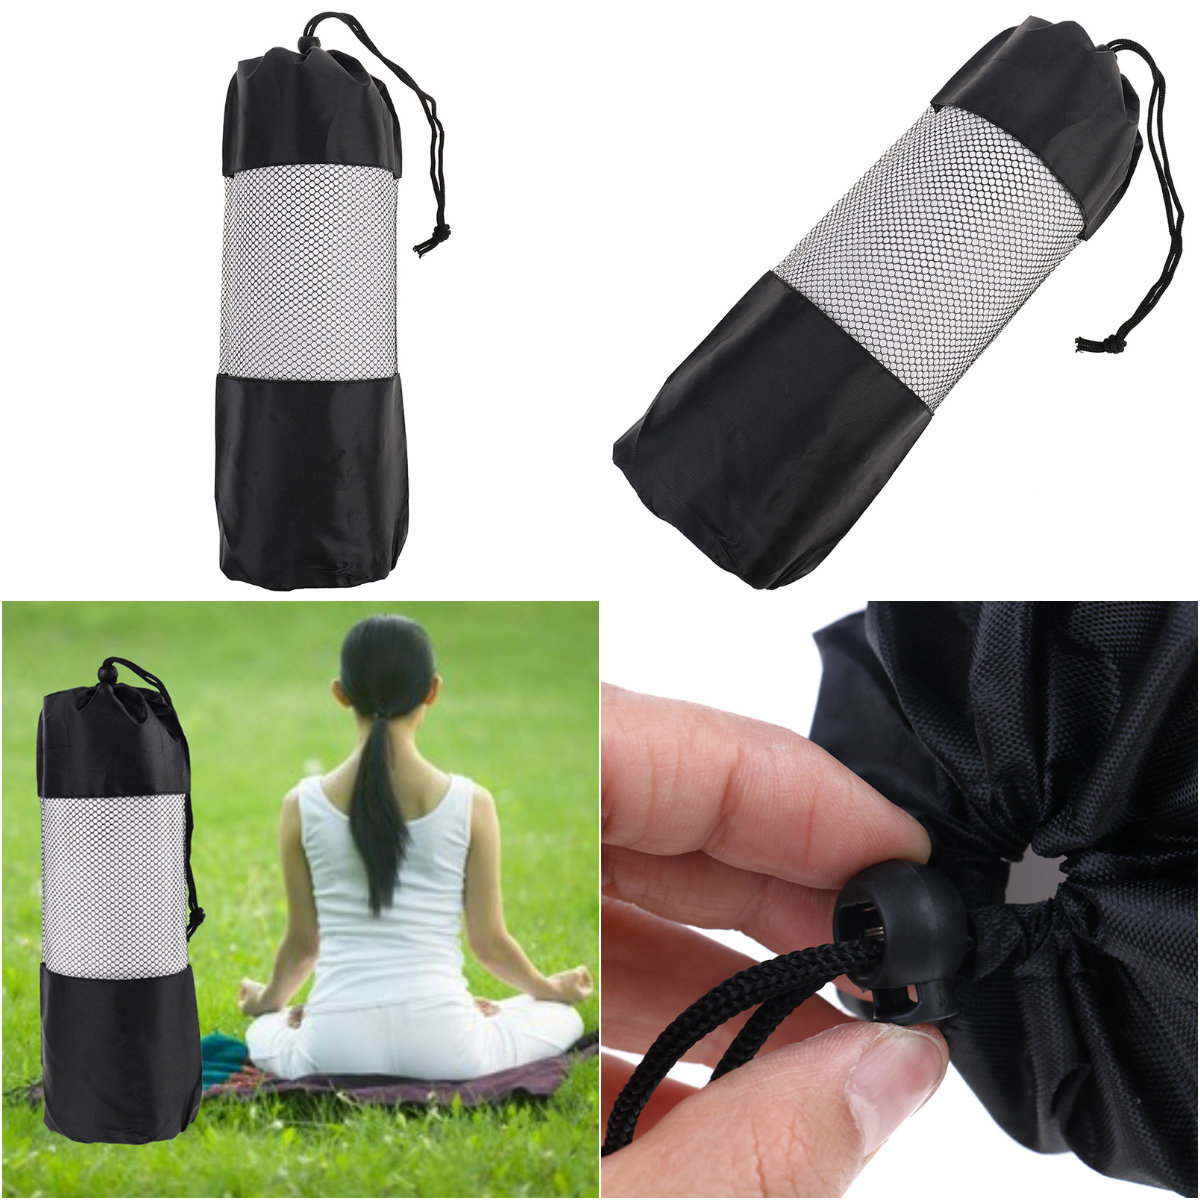 Sport Exercise Mat Carry Strap Drawstring Bag Gym Bag Fitness Backpack 35*10.5cm Yoga Bag Canvas Practical Yoga Pilates Crazy Price Ropa, Calzado Y Complementos